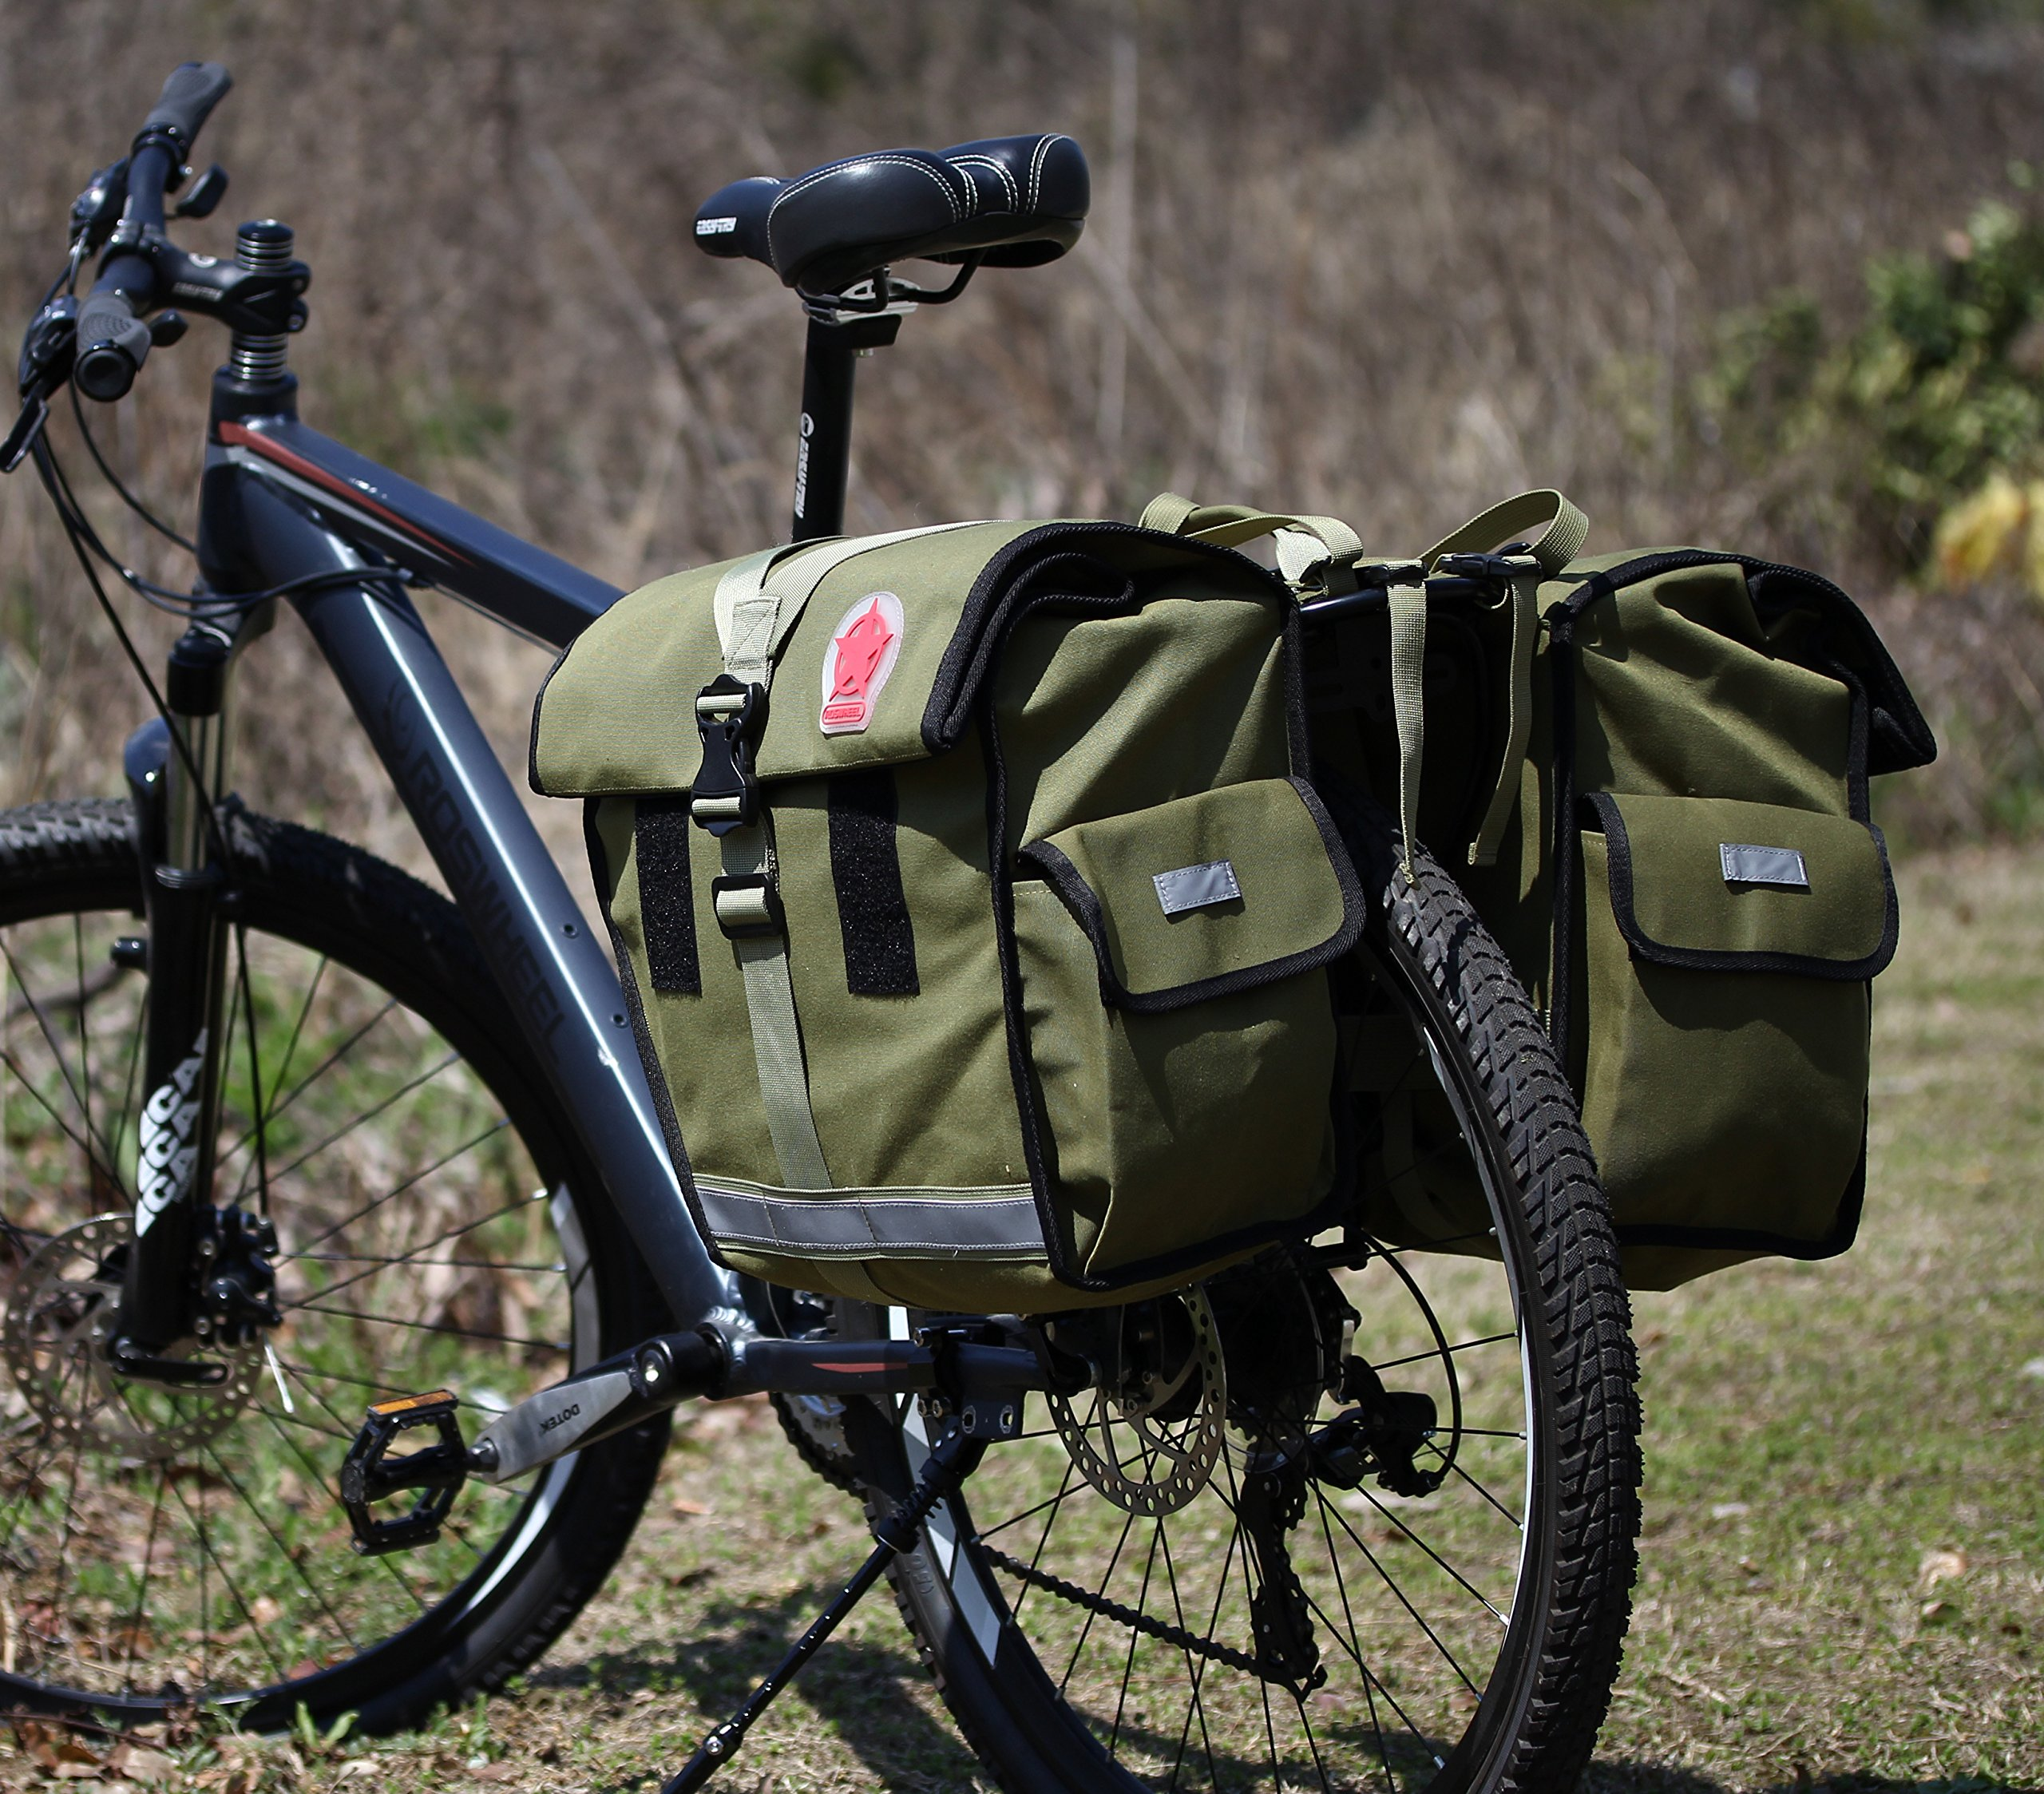 Roswheel 14686 Expedition Series Bike Rear Rack Bag Bicycle Double Panniers Cargo Trunk Bag by Roswheel (Image #9)